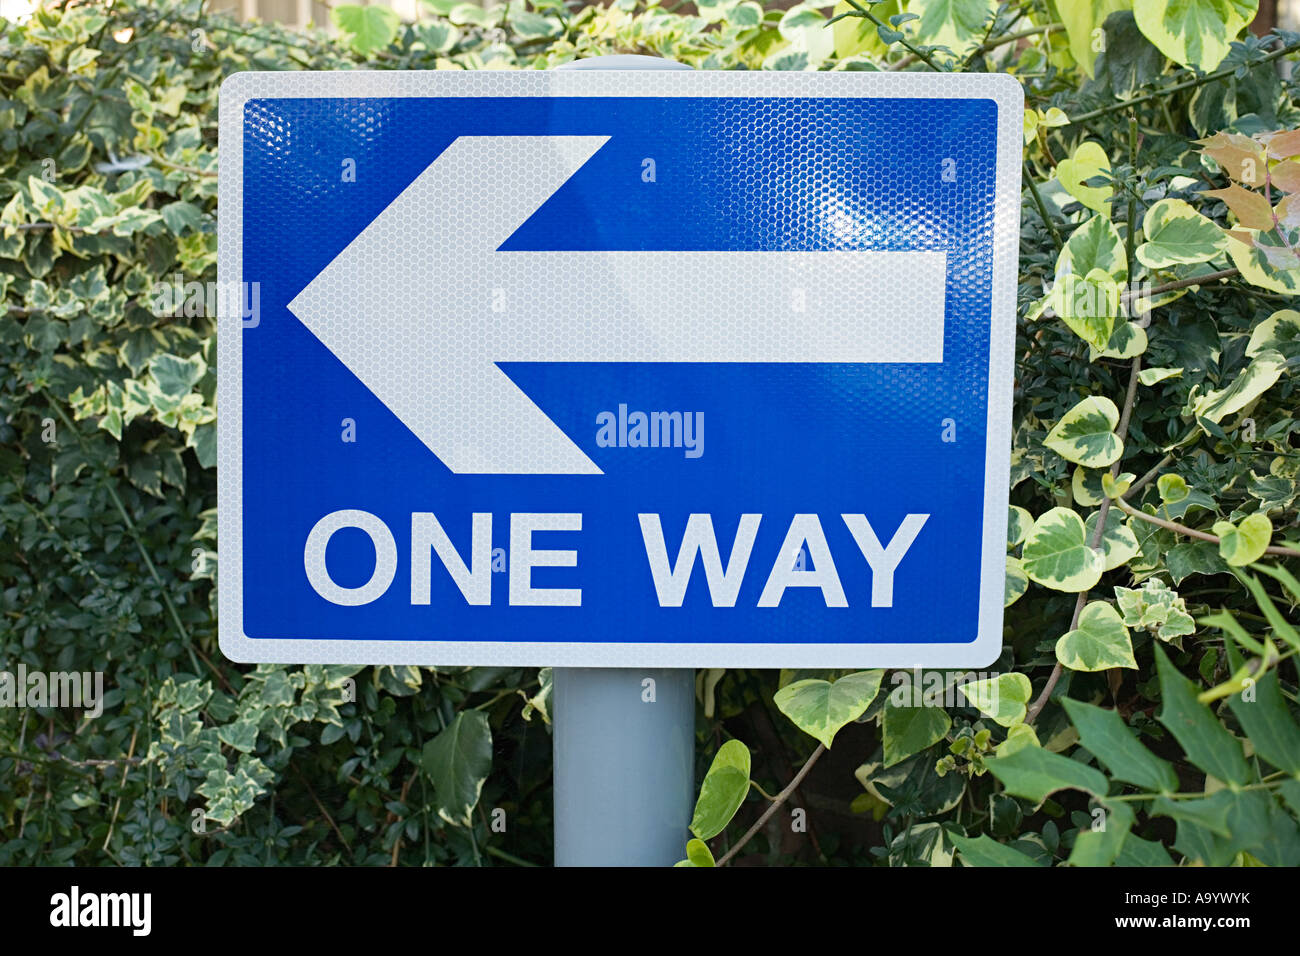 One way sign - Stock Image